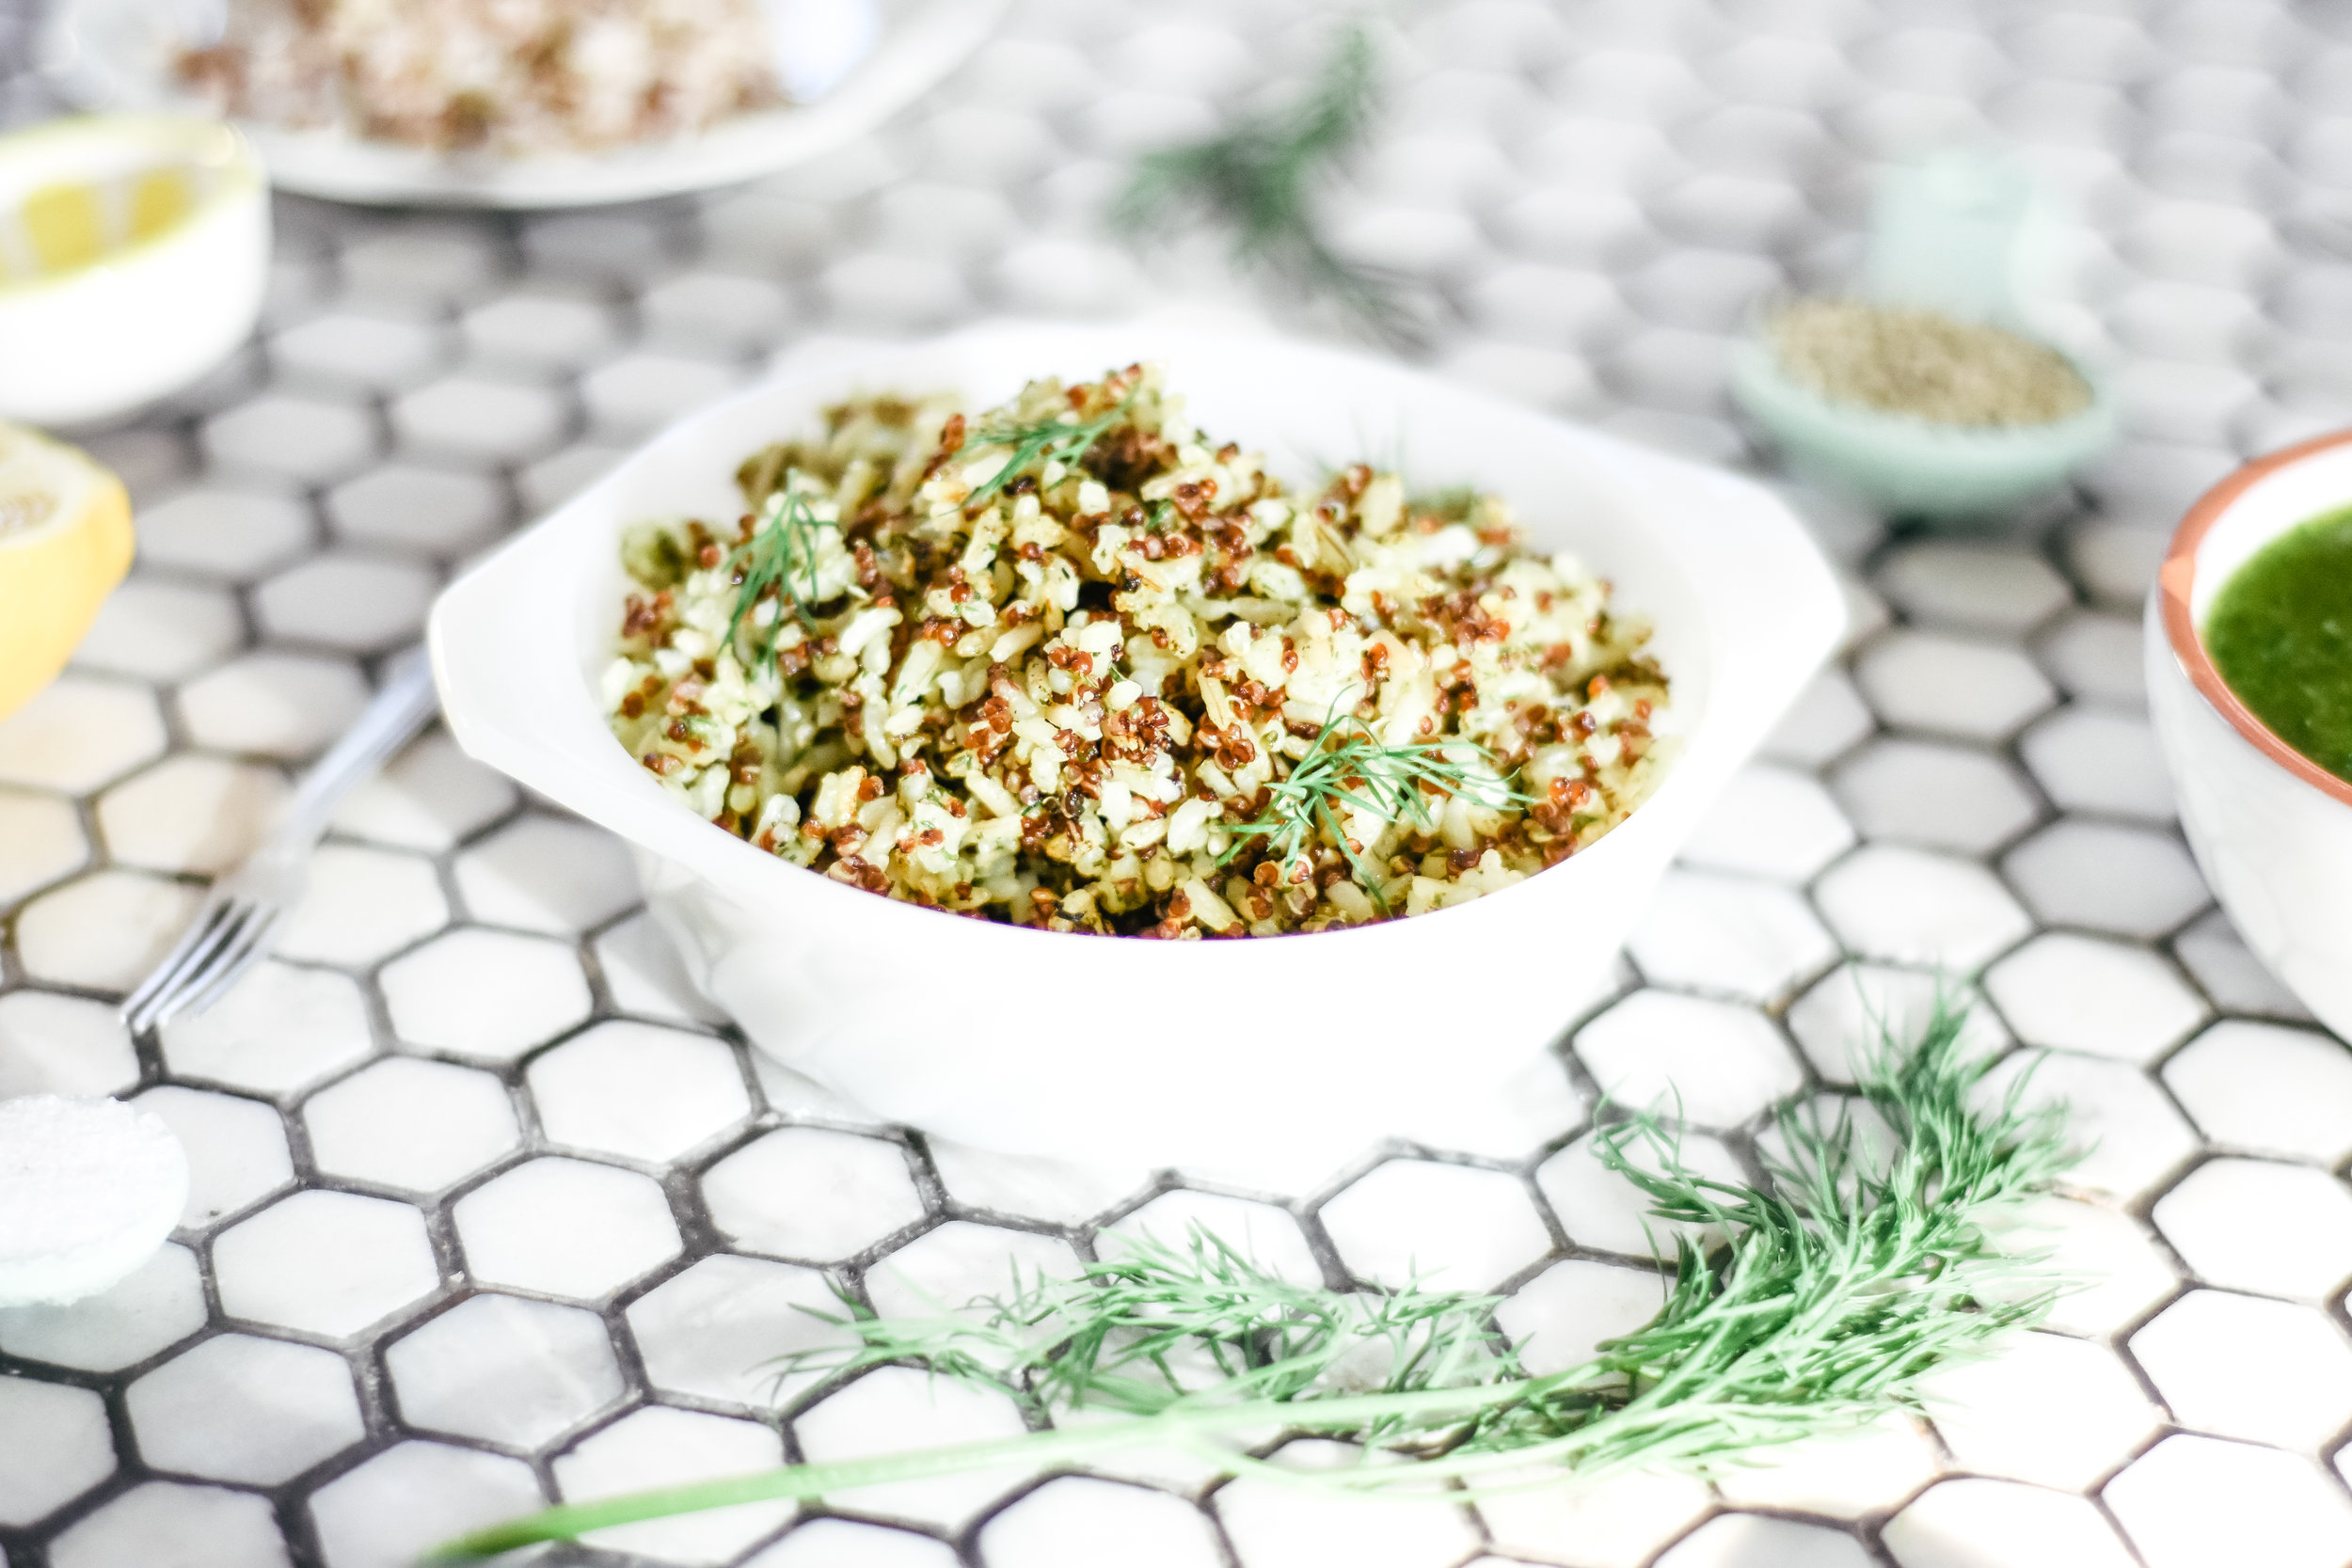 easy dill sauce recipe and family dinner with quinoa and brown rice